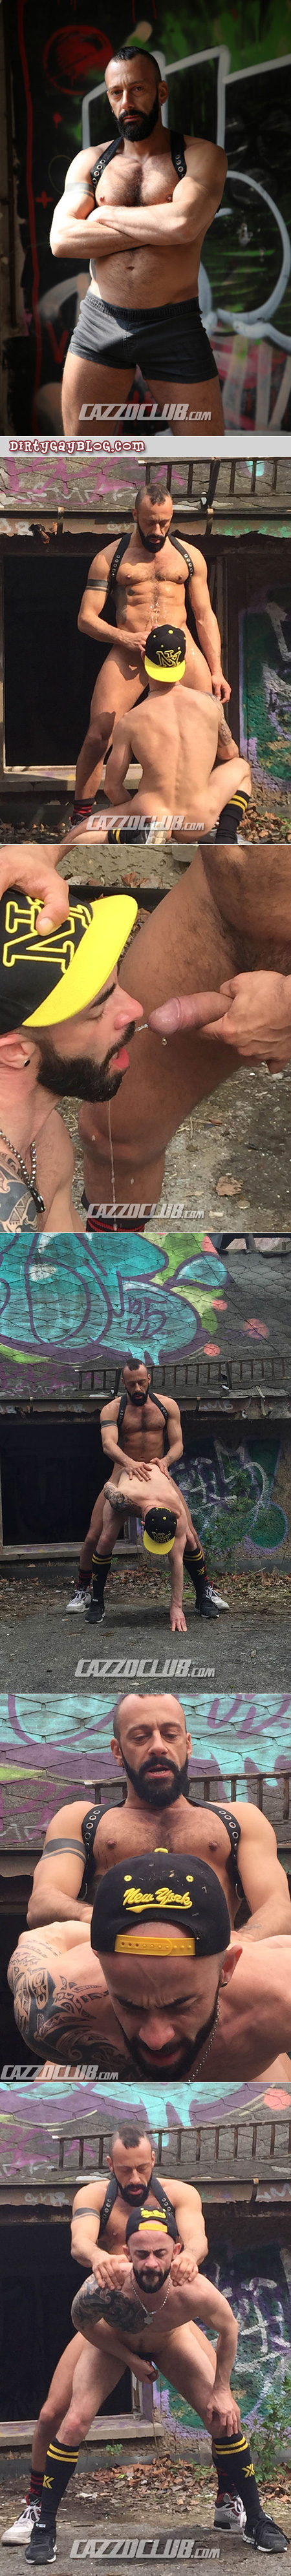 Spanish muscle bear pissing on a bearded hunk and fucking him in the ass.